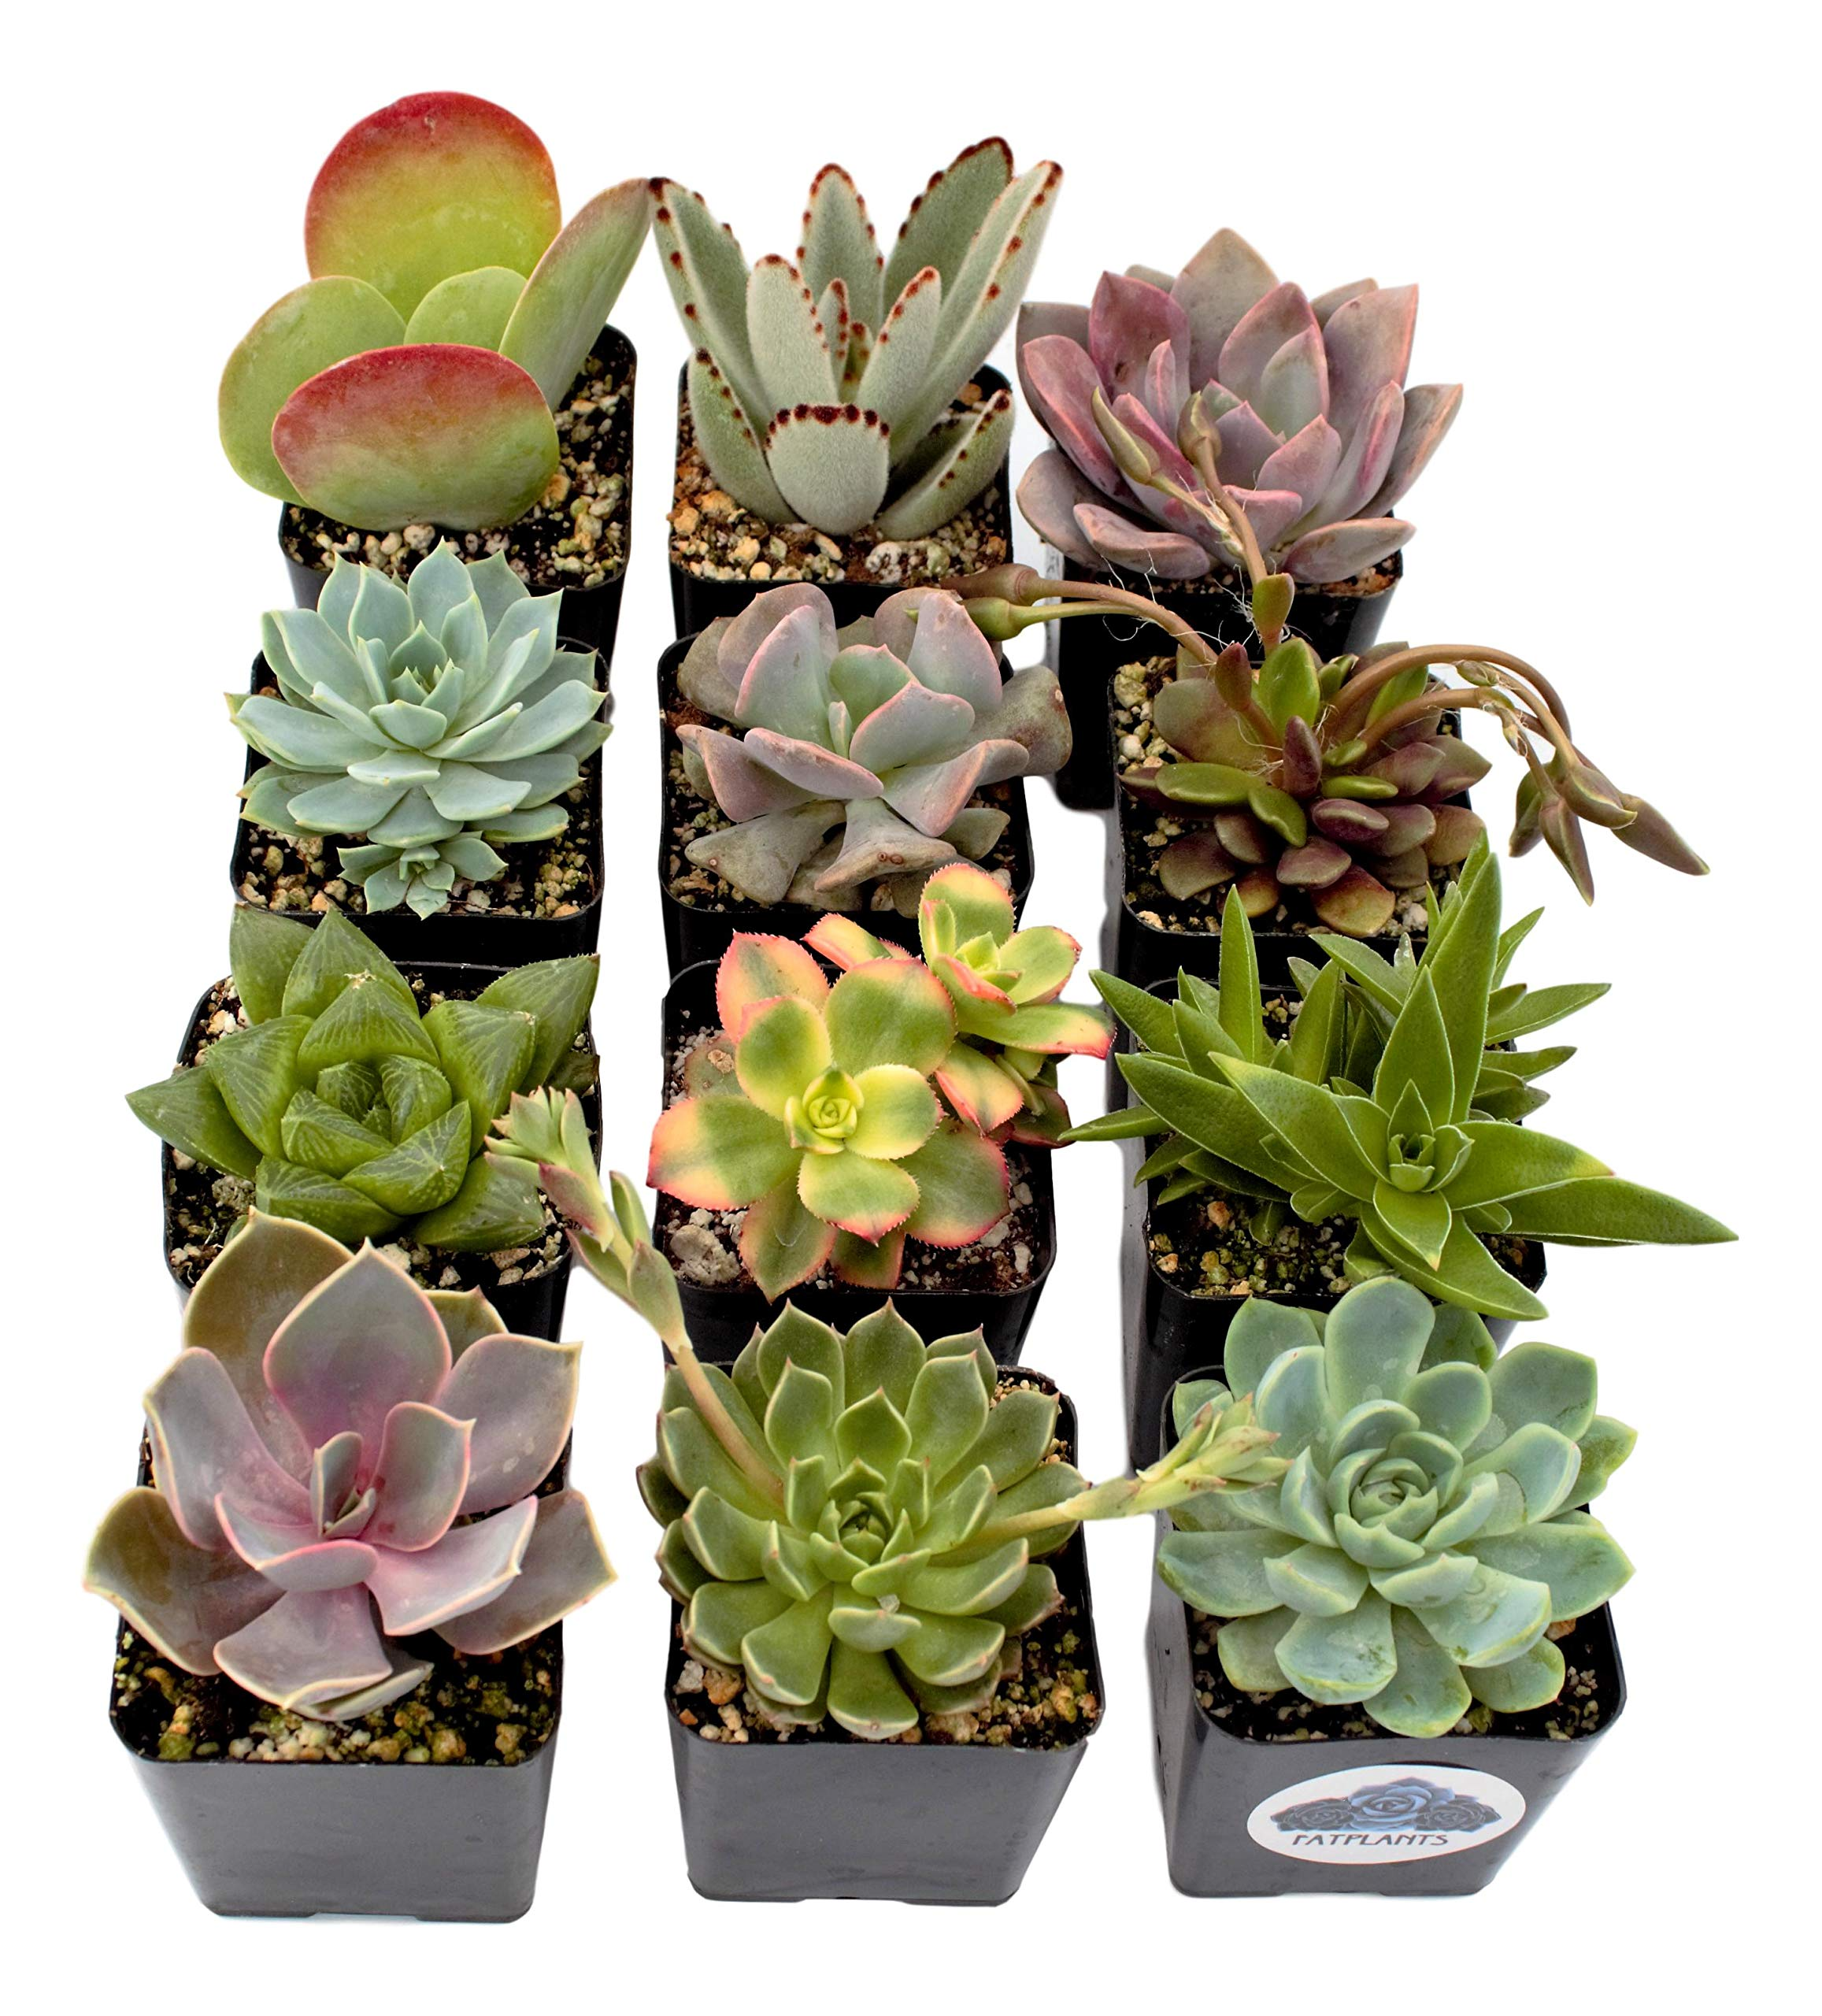 Fat Plants San Diego Premium Succulent Plant Variety Package. Live Indoor Succulents Rooted in Soil in a Plastic Growers Pot (12) by Fat Plants San Diego